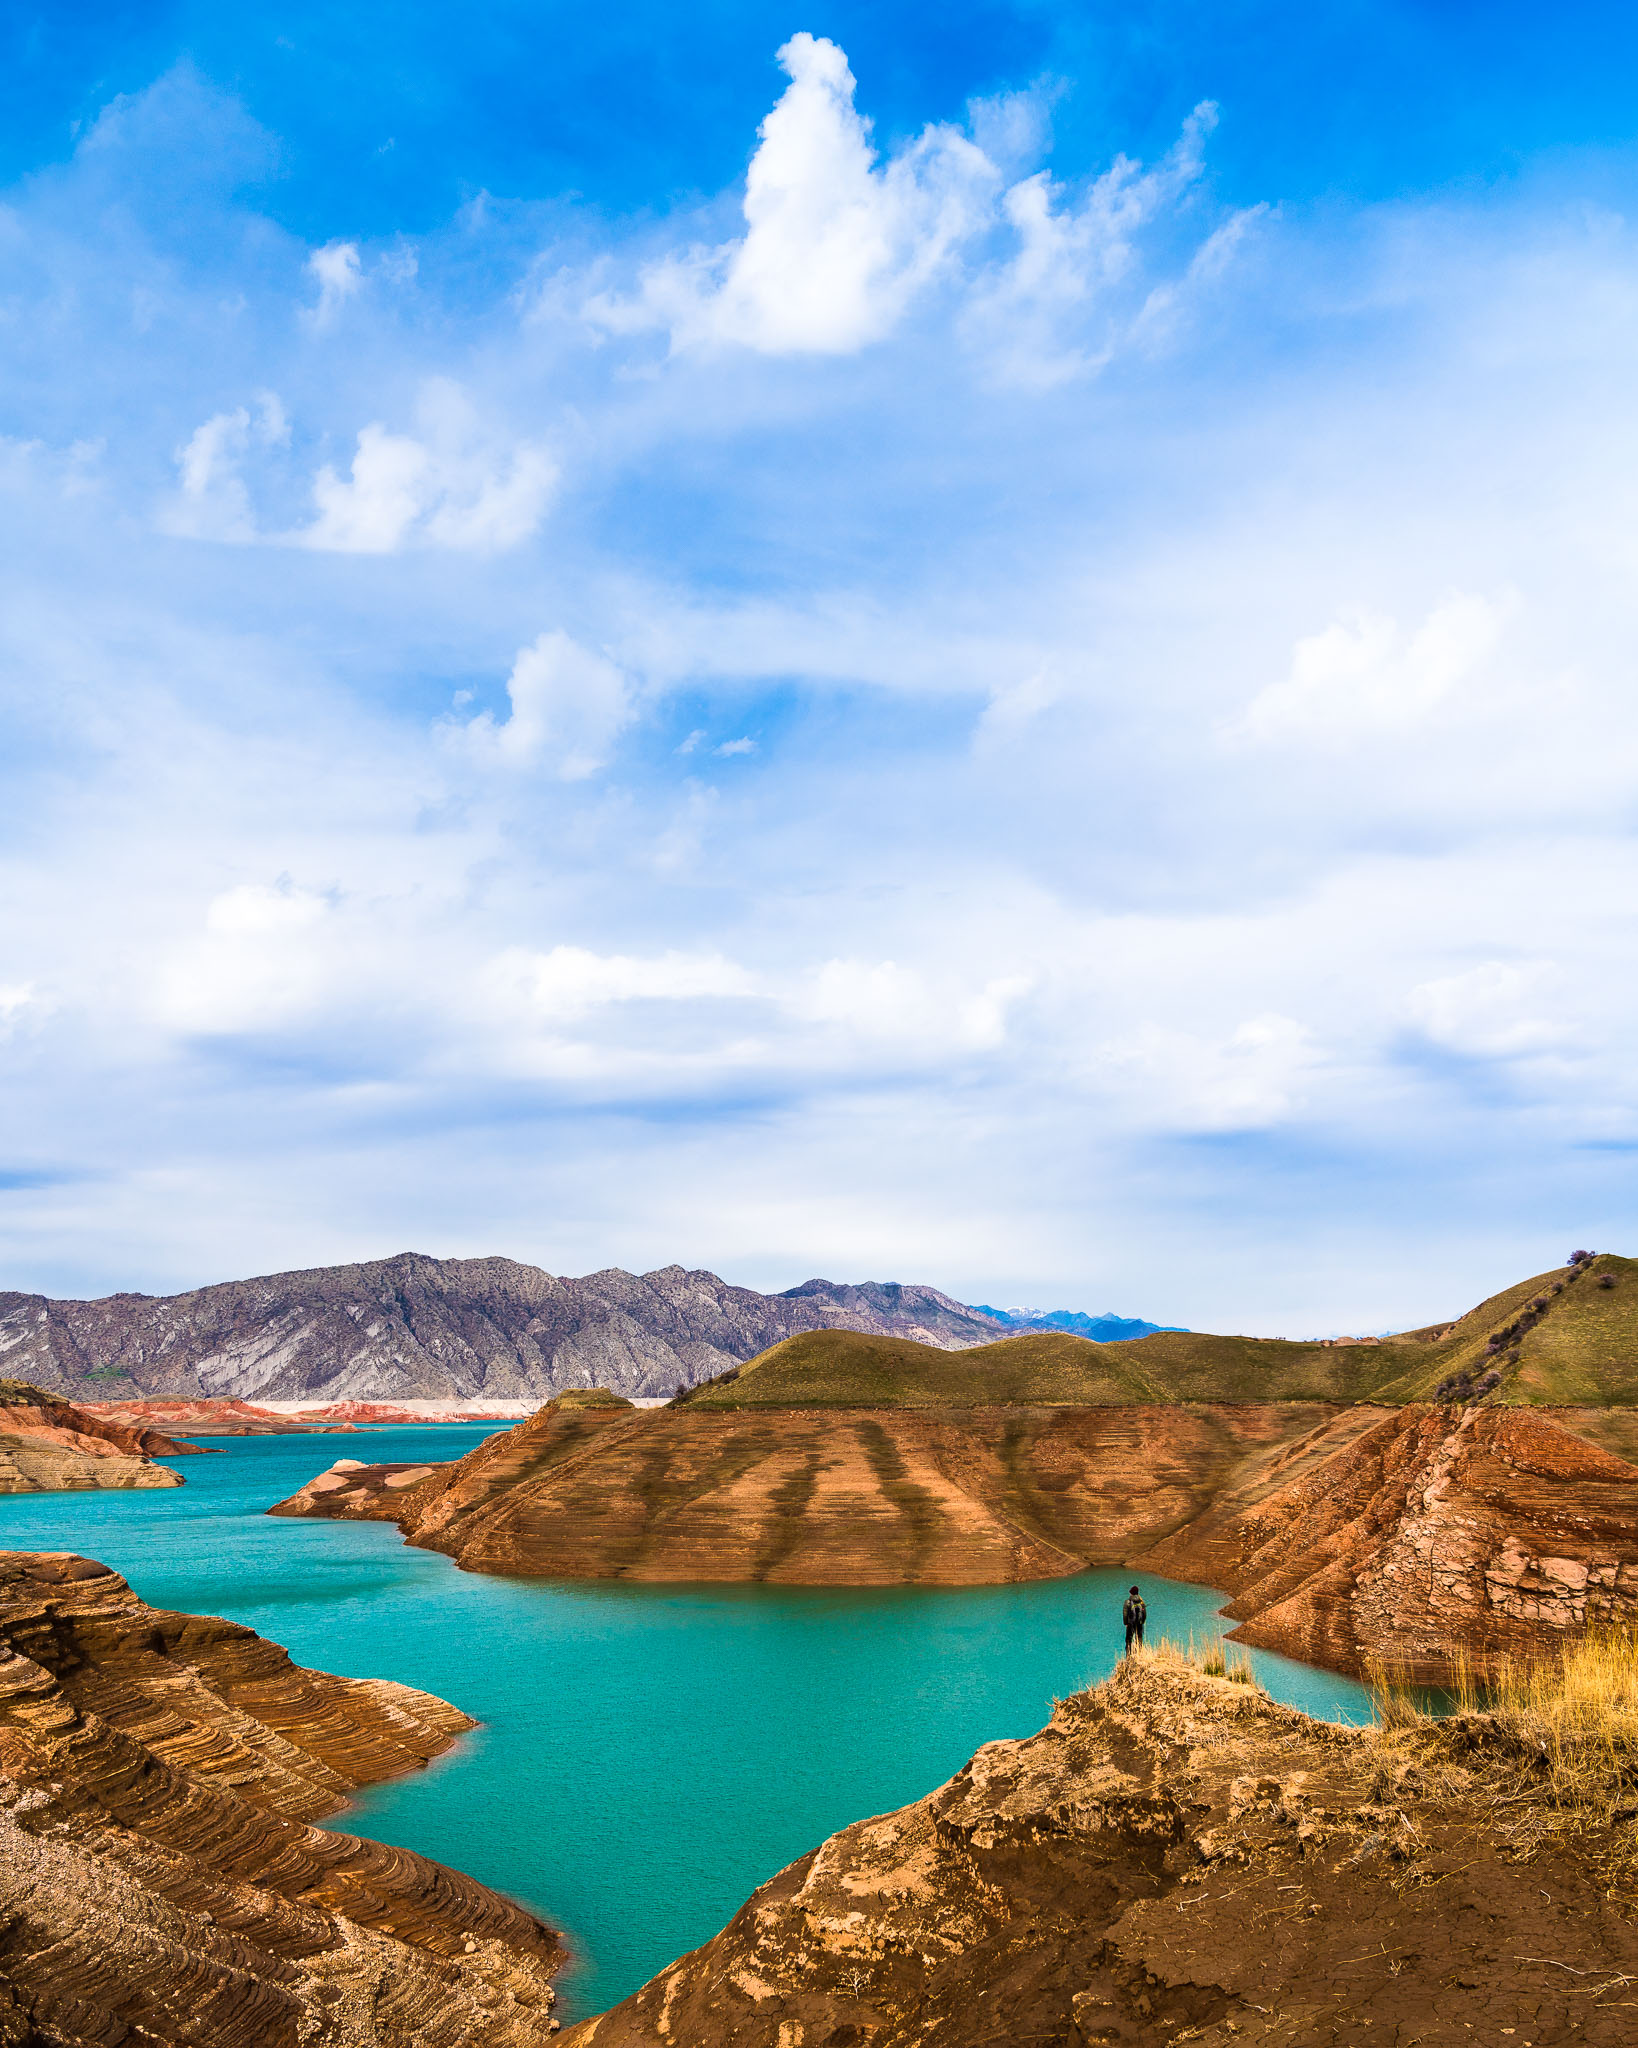 Landscape photographer – Hiking in Tajikistan